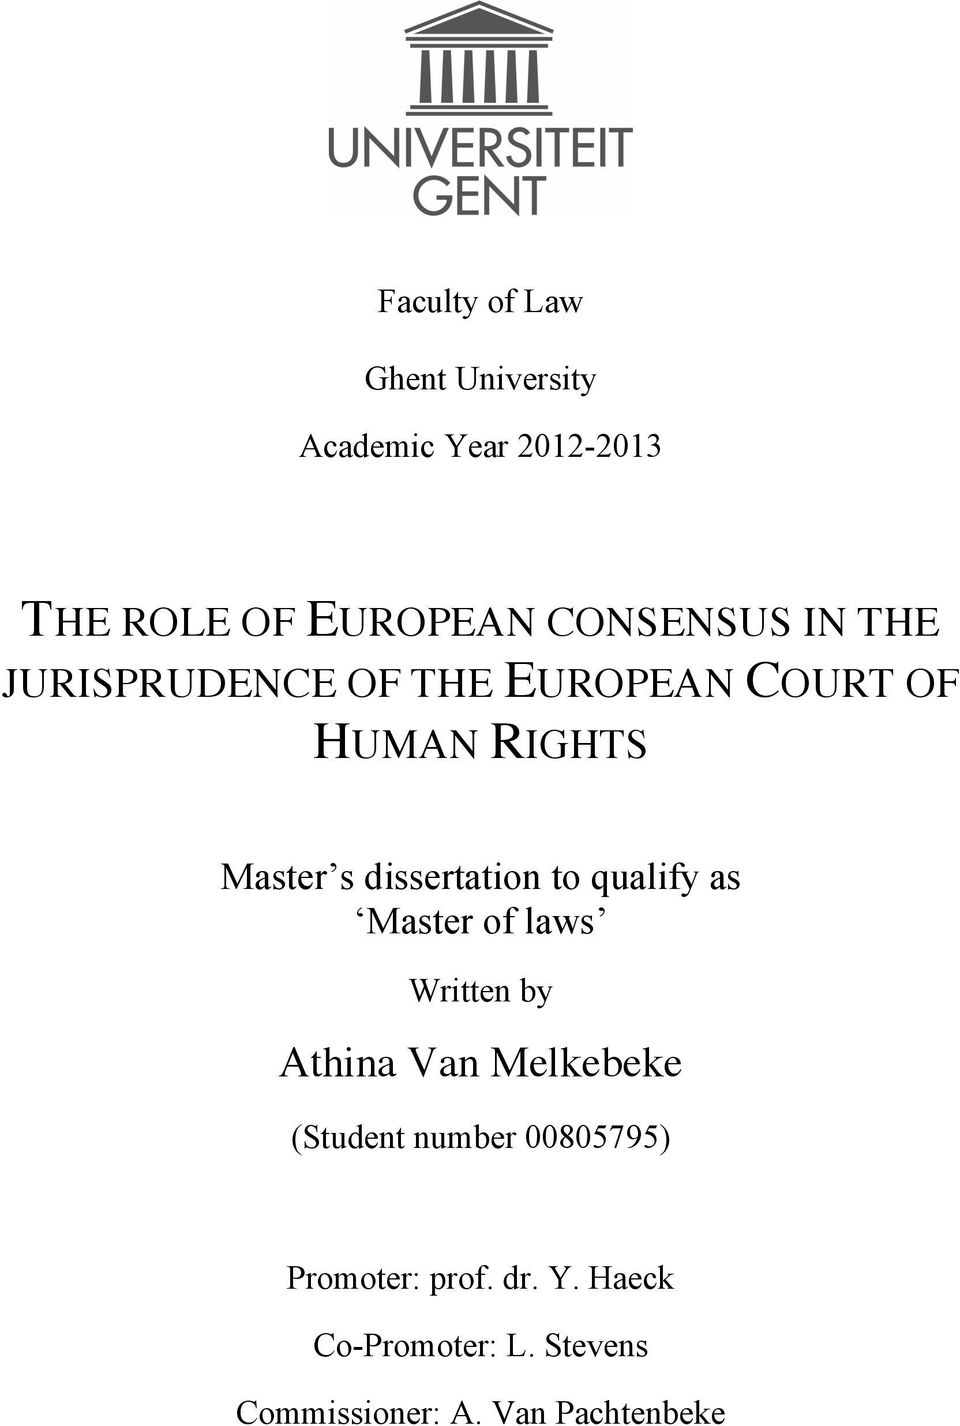 dissertation to qualify as Master of laws Written by Athina Van Melkebeke (Student